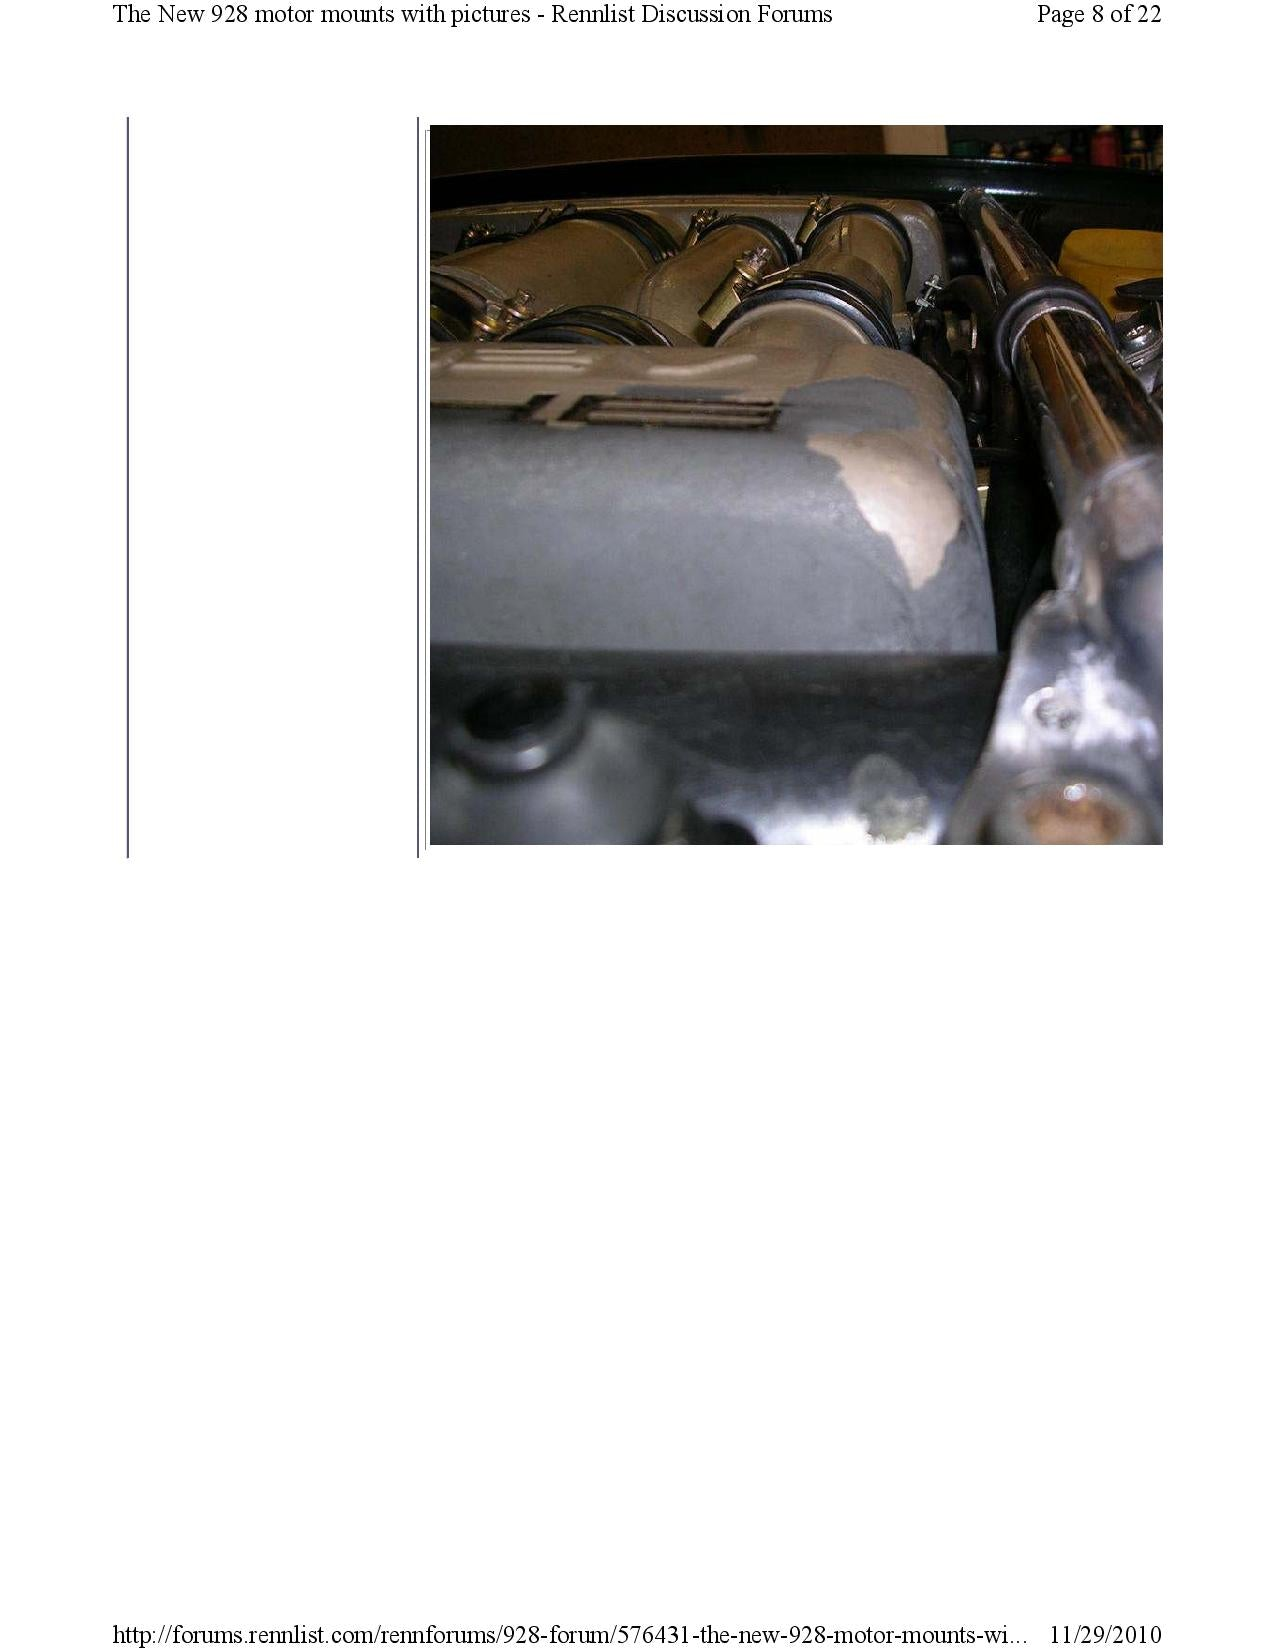 New 928 motor mounts with pictures pg8